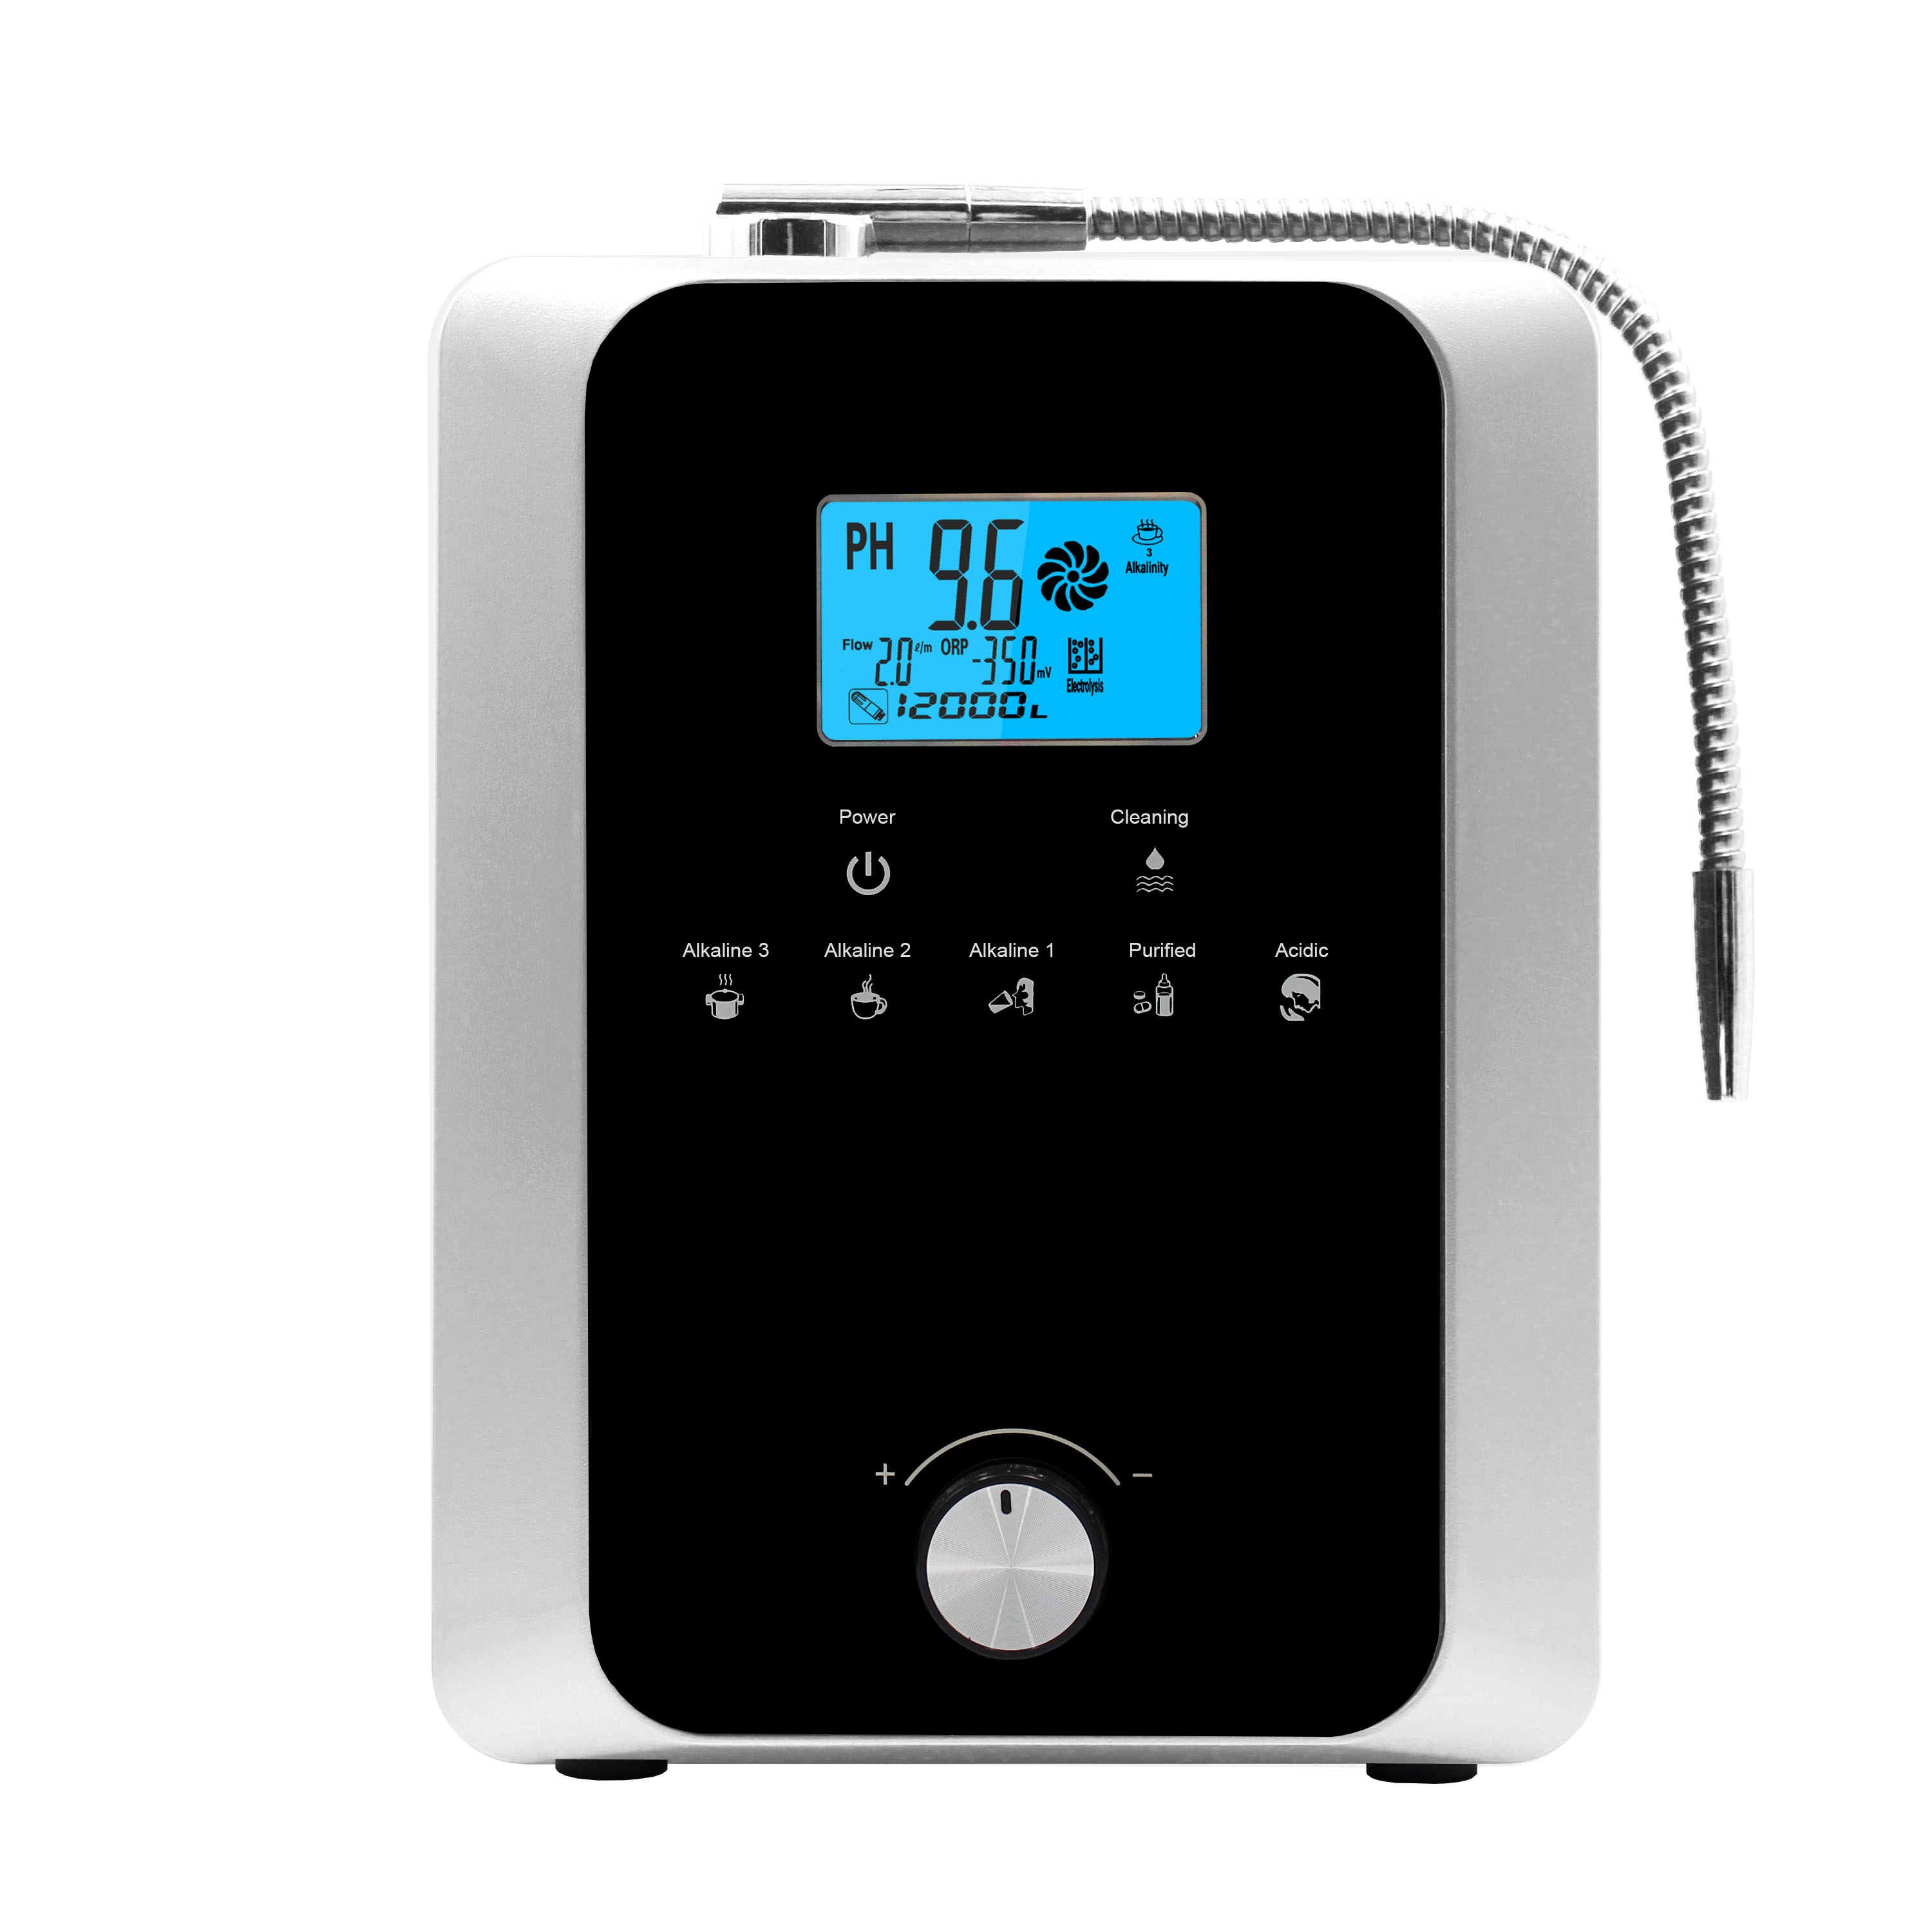 new product commercial alkline water ionizer enlarge